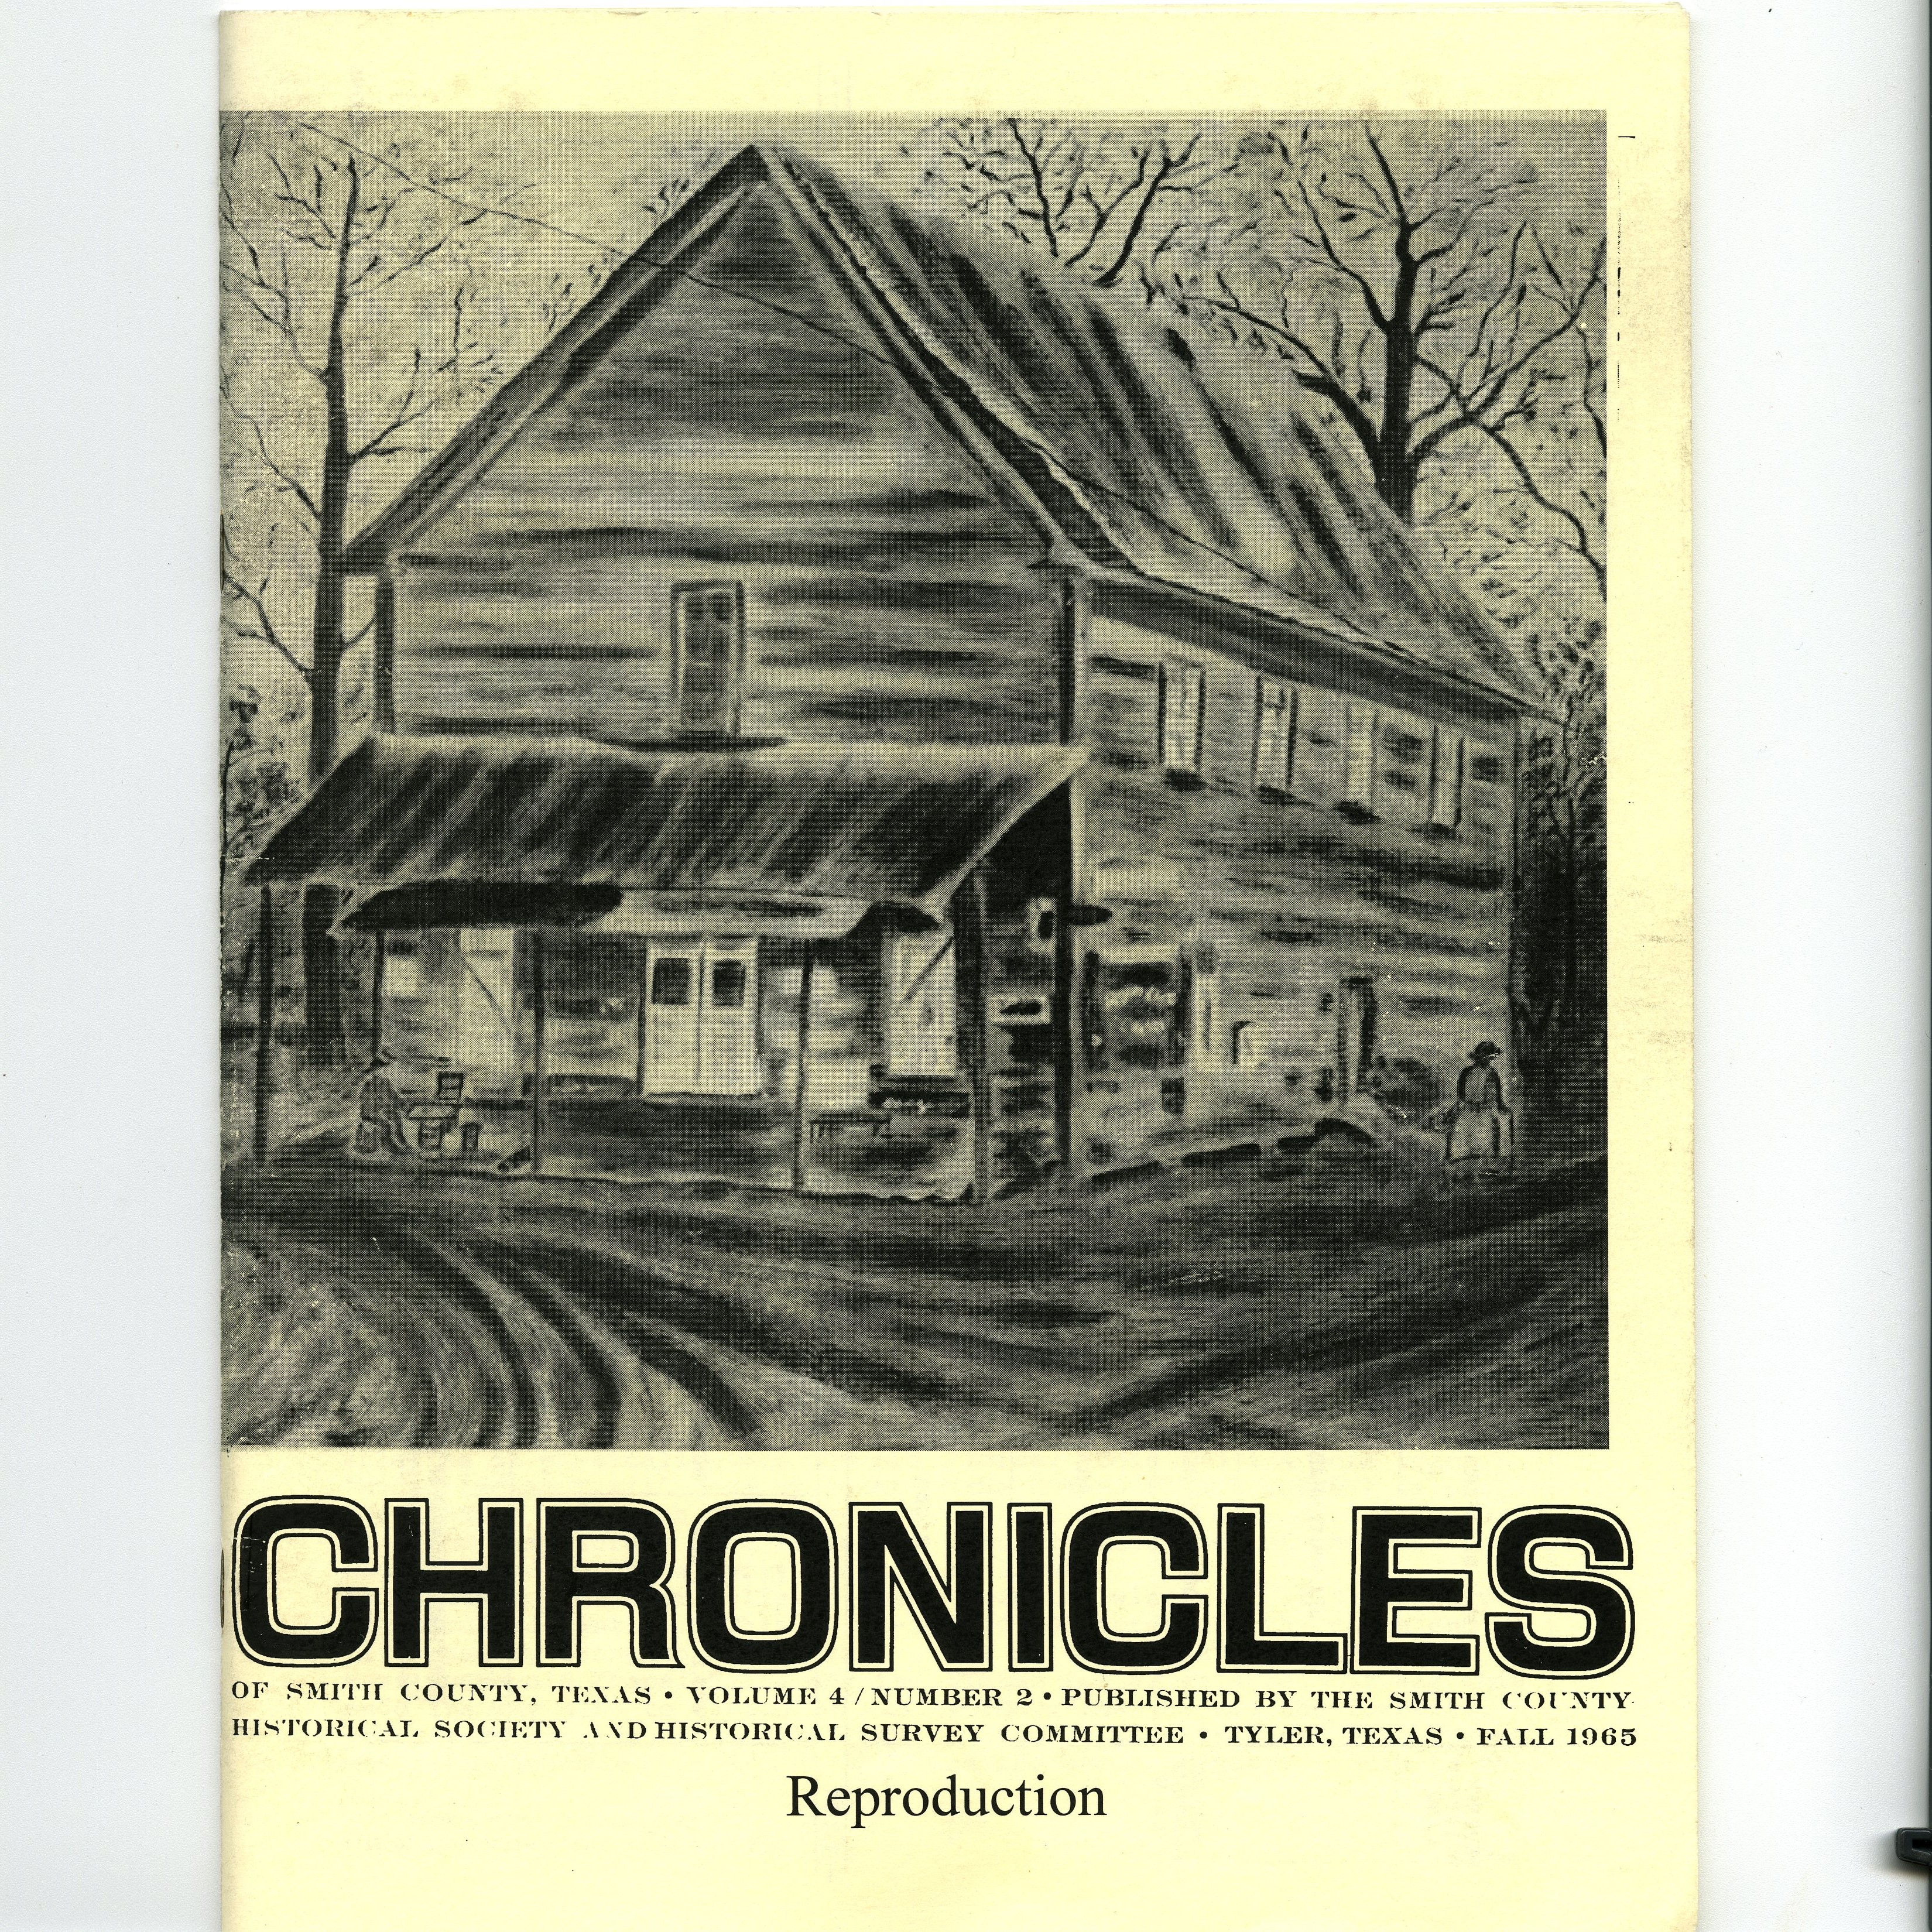 Chronicles of Smith County, Texas, Volume 4 Issue 2,Fall 1965.